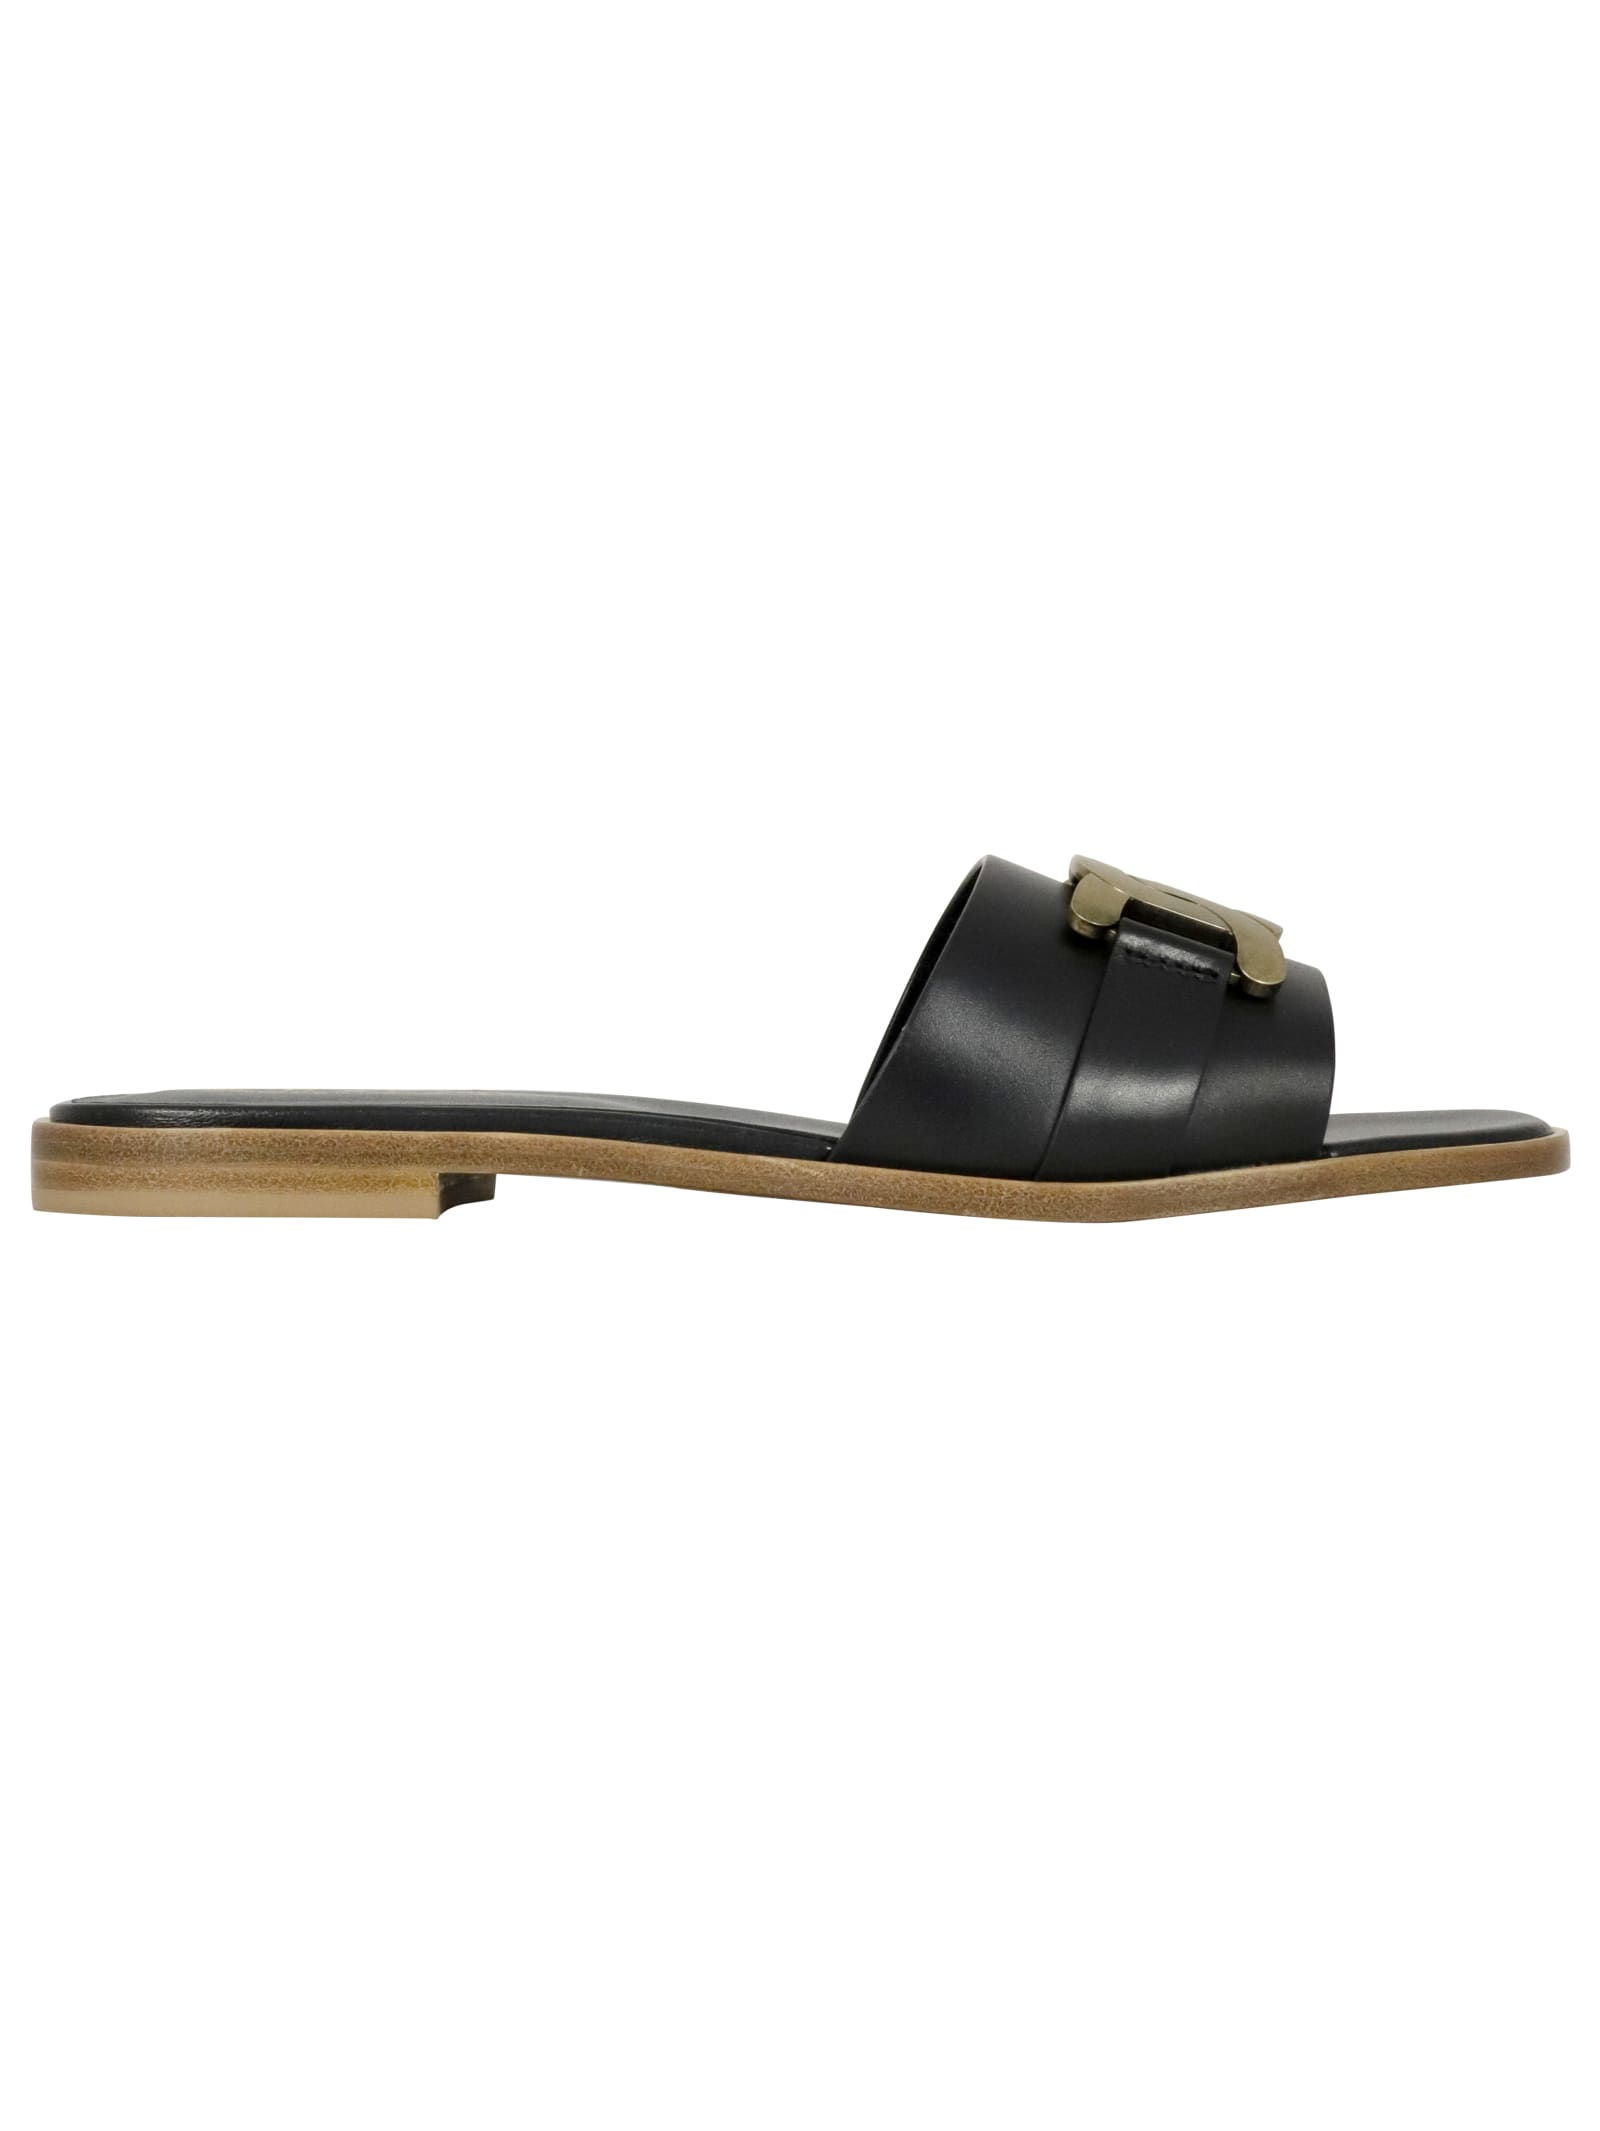 Buy Tods Sandalo 05g Sandal online, shop Tods shoes with free shipping